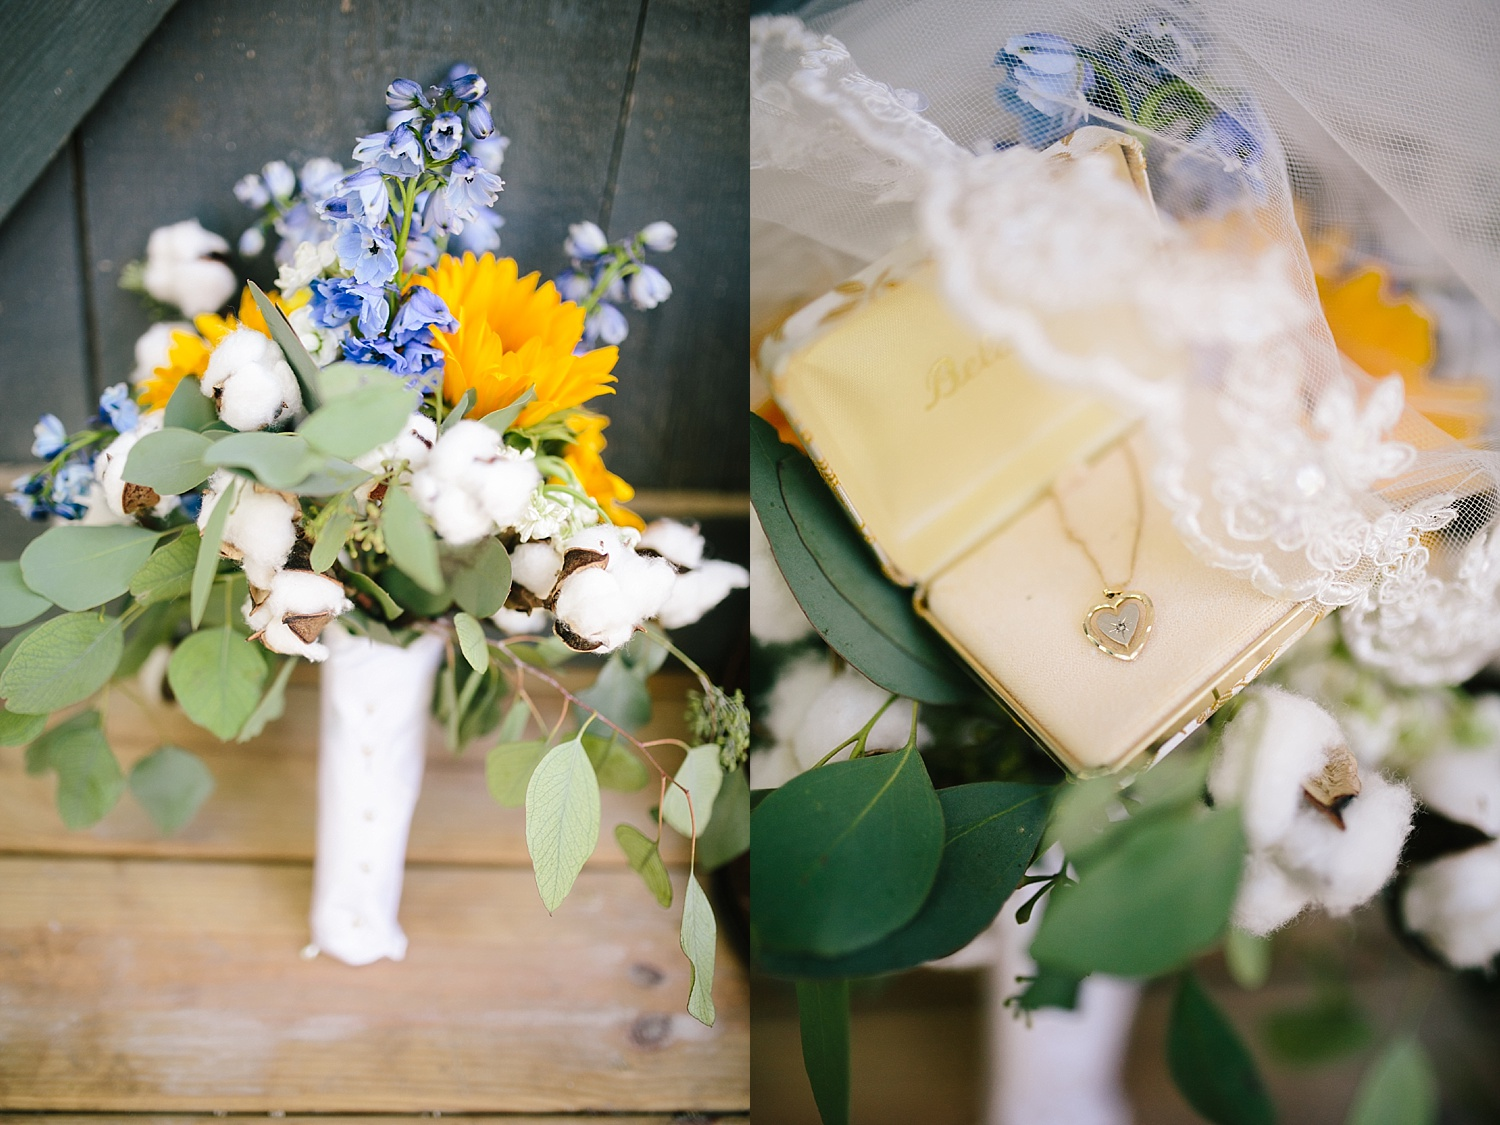 jennyryan_newbeginnings_farmstead_upstatenewyork_wedding_image009.jpg